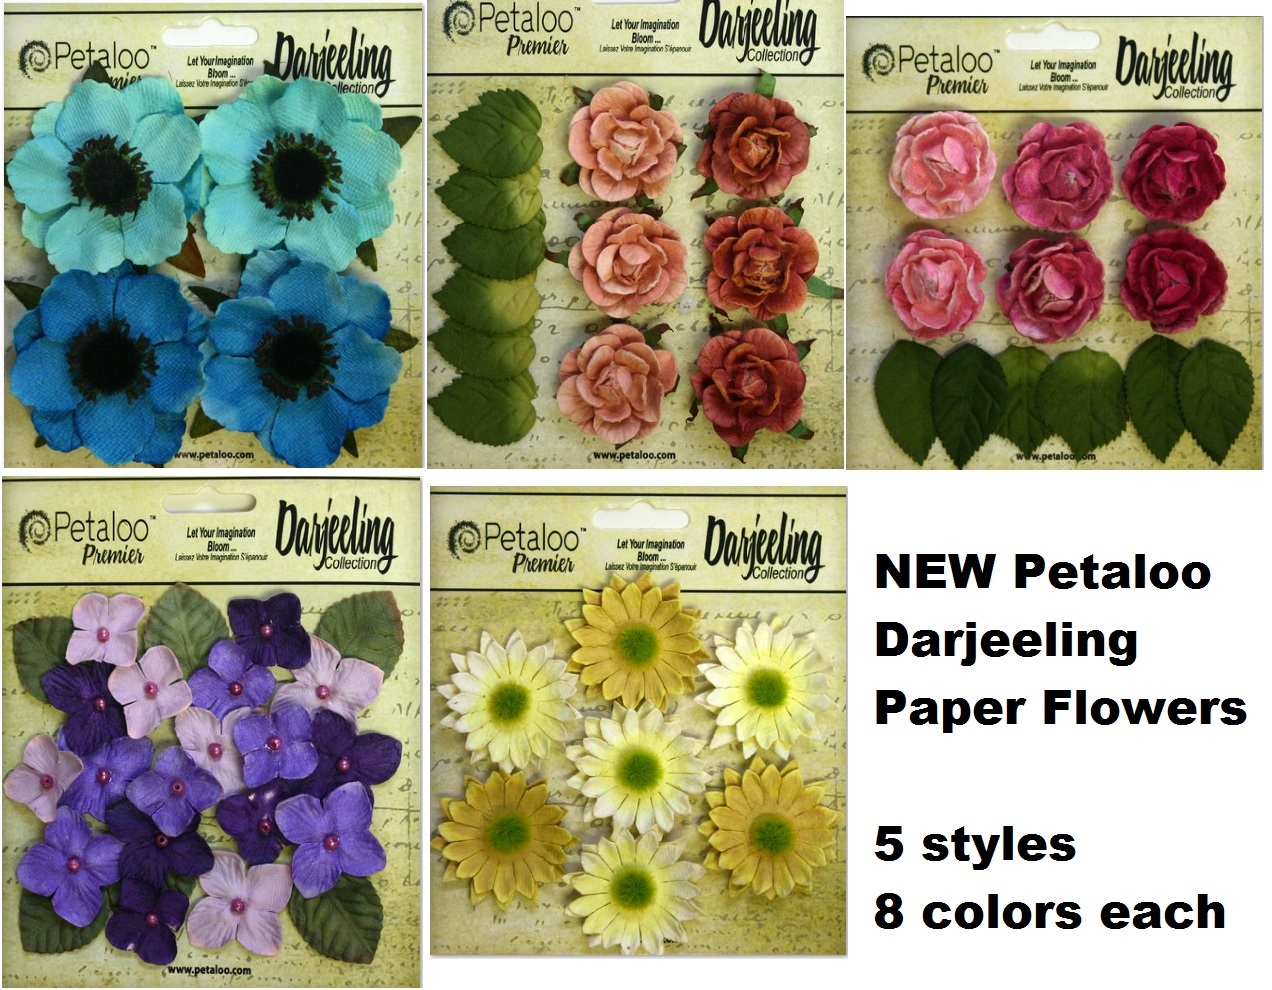 Petaloo - New Darjeling Anemones, roses, hydrangeas, and daisies